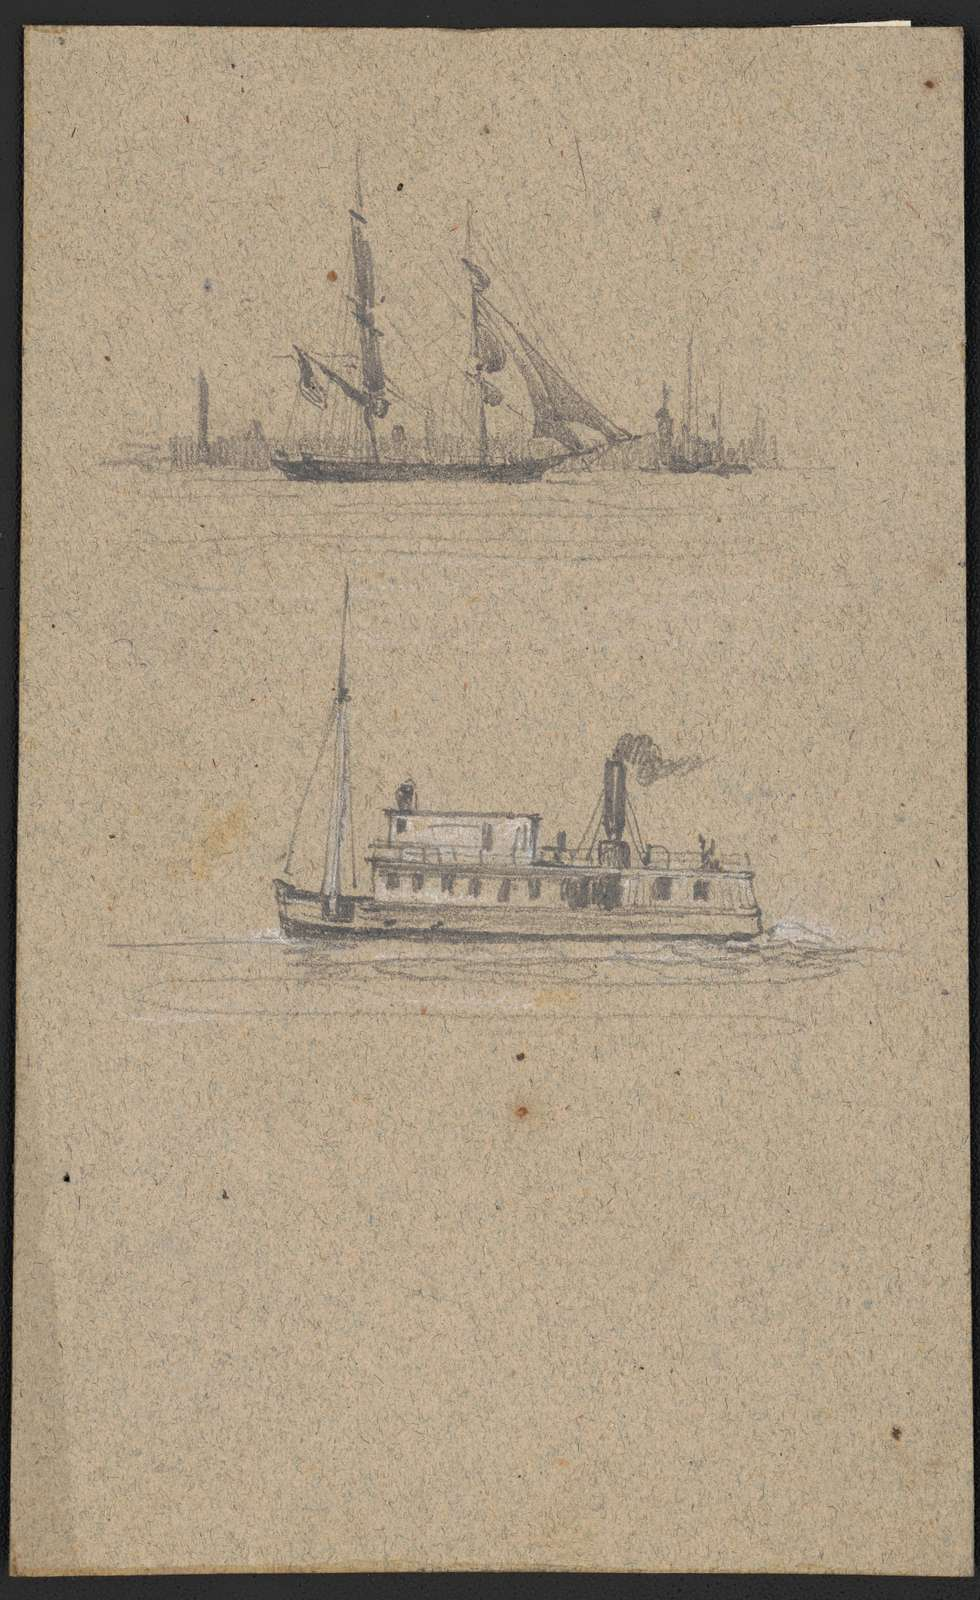 Study sketches of two ships - a sailing ship and a steamship, possibly a ferry